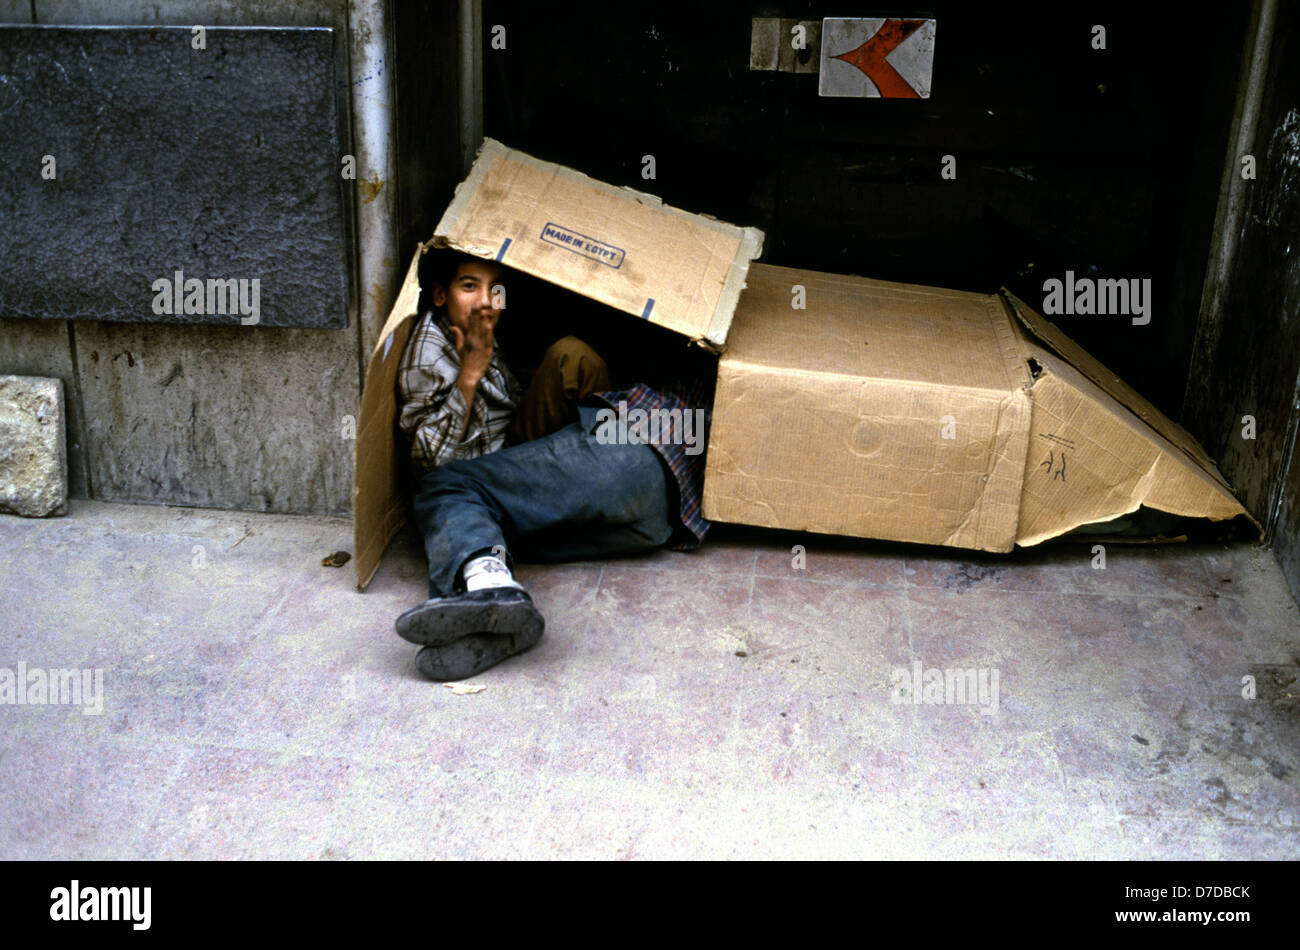 young homeless boys inside cardboard box cairo egypt stock photo 56228051 alamy. Black Bedroom Furniture Sets. Home Design Ideas